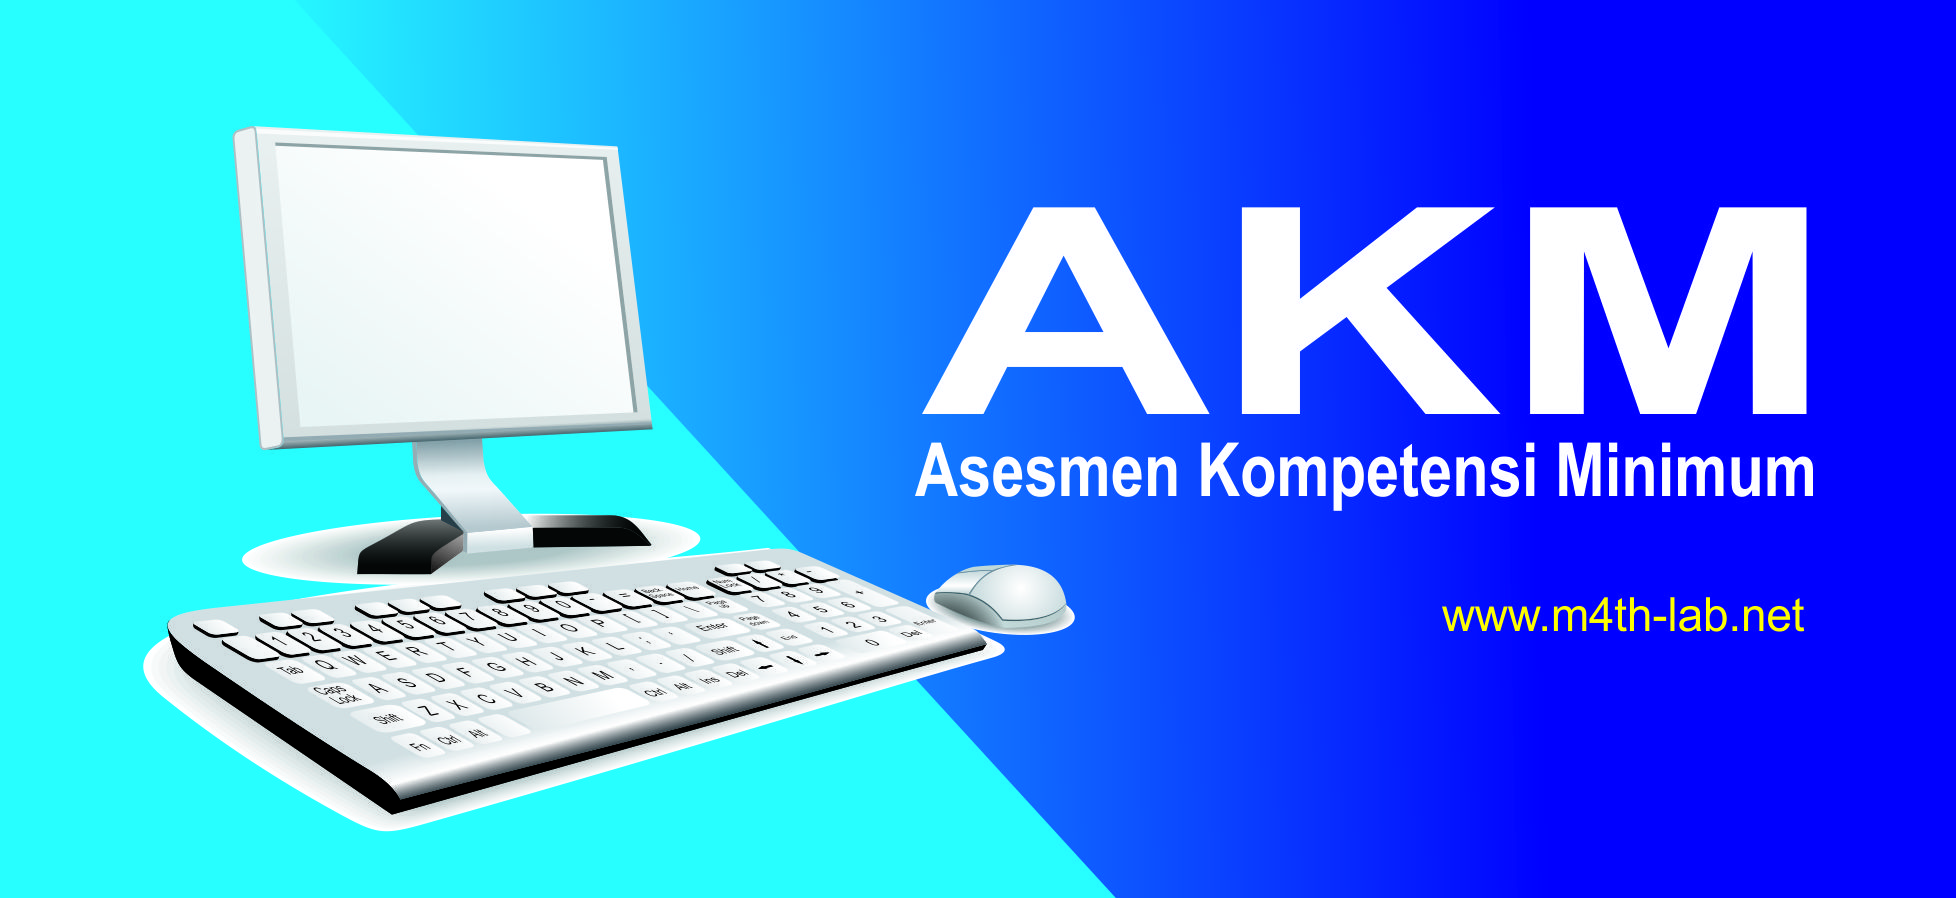 Download Soal Asesmen Kompetensi Minimum Akm Sma 1 M4th Lab